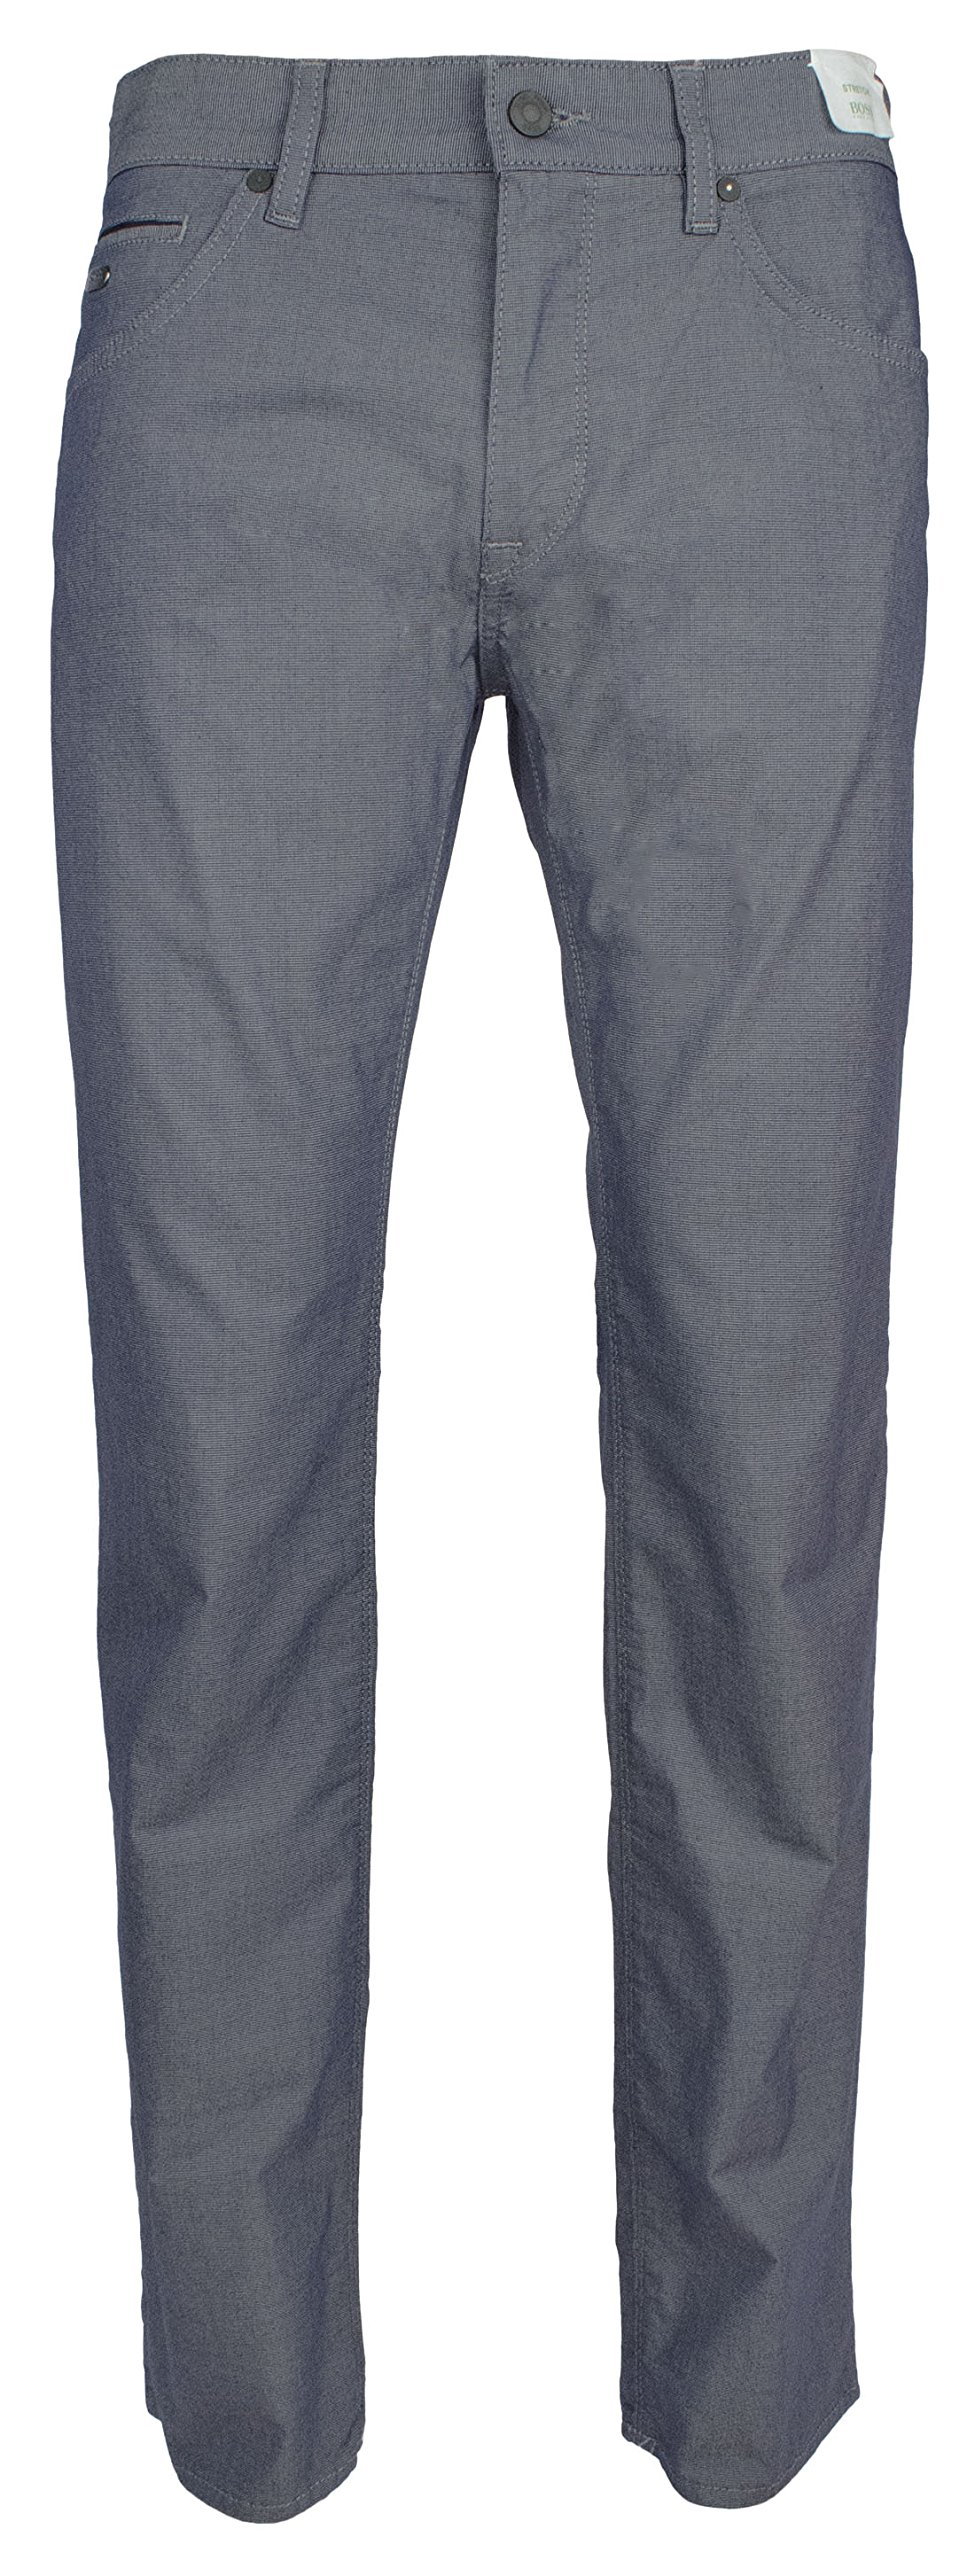 Hugo Boss Men's C-Maine1 Five-Pocket Stretch Pants Jean Style-DN-34Wx34L